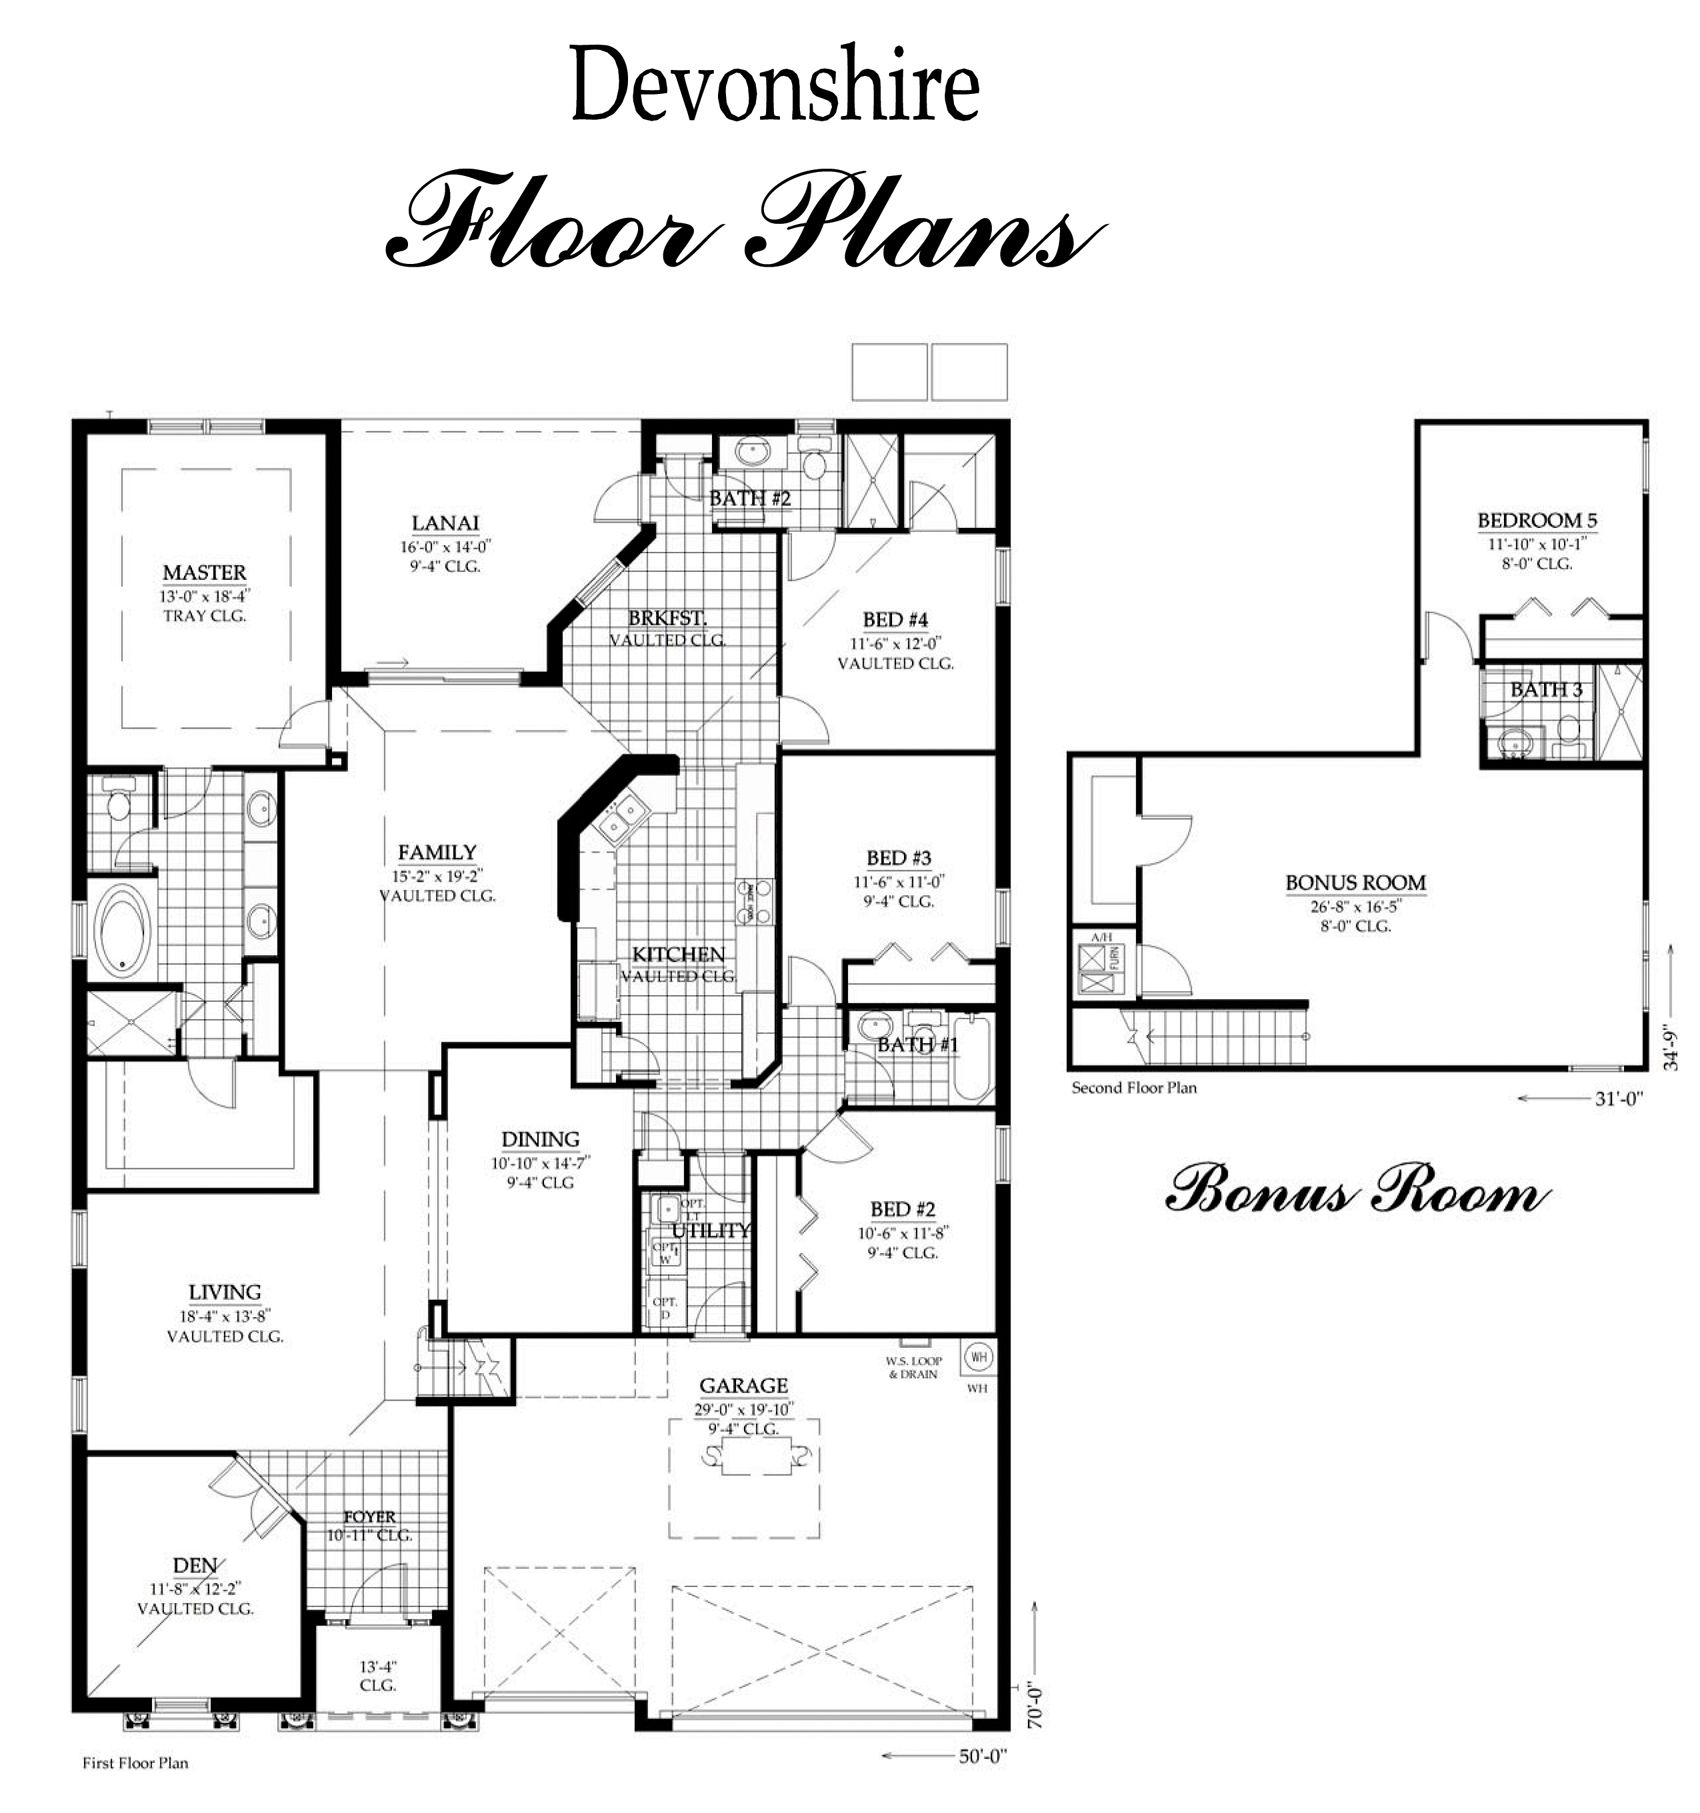 The Devonshire With Bonus Room Is A Lot Of Home For The Money This 3 Bedroom 3 Bath 2 Car Garage Also Has A Den And Large Upstairs Bonus Room The Ki